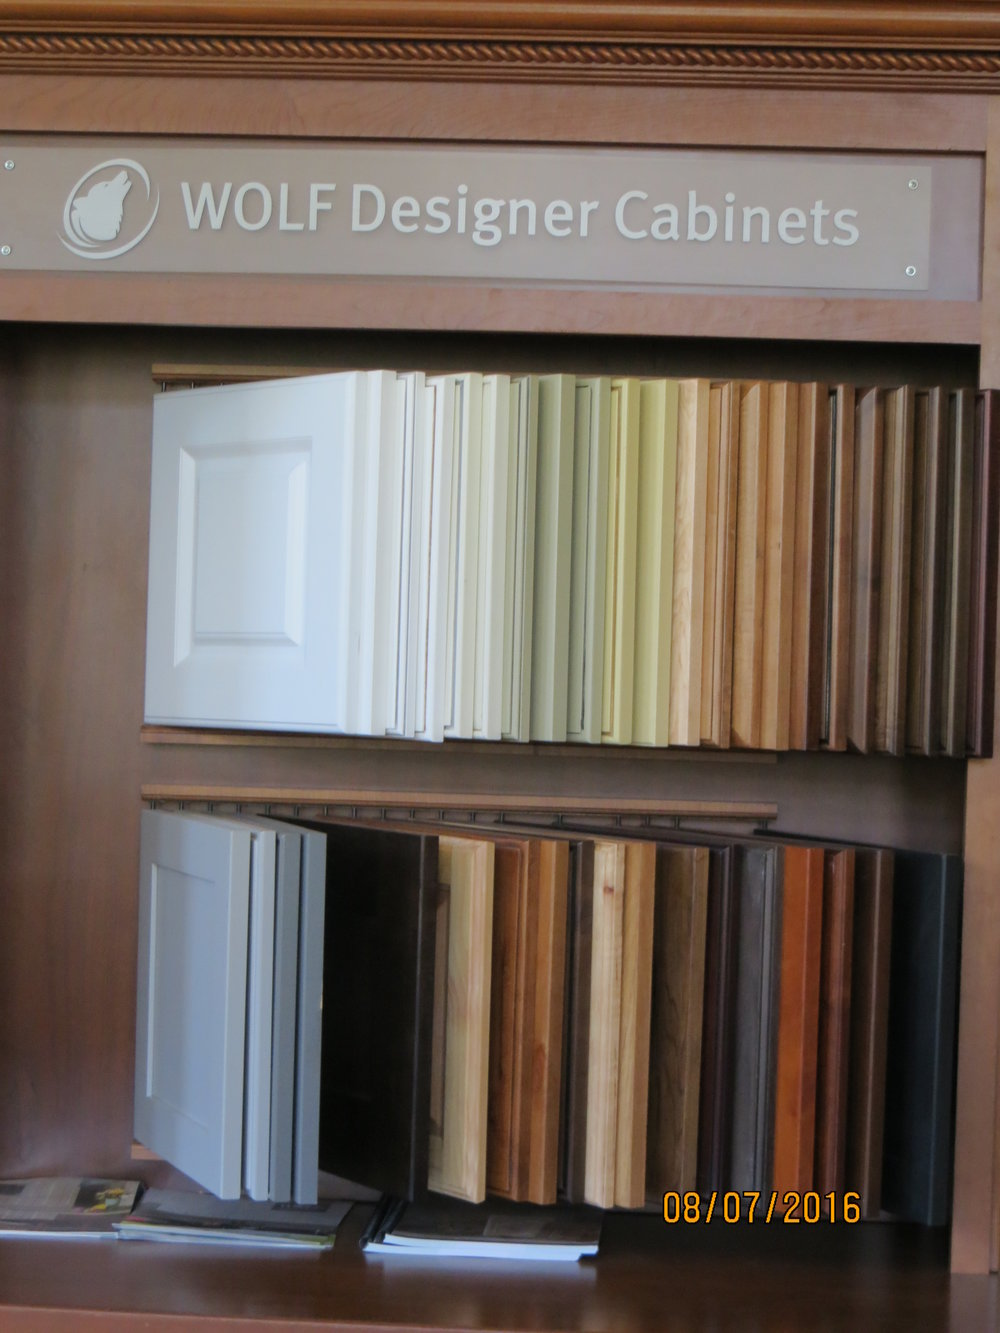 Cabinets & Hardware - WOLF CabinetsHardware selectionPlumbing fixture selection